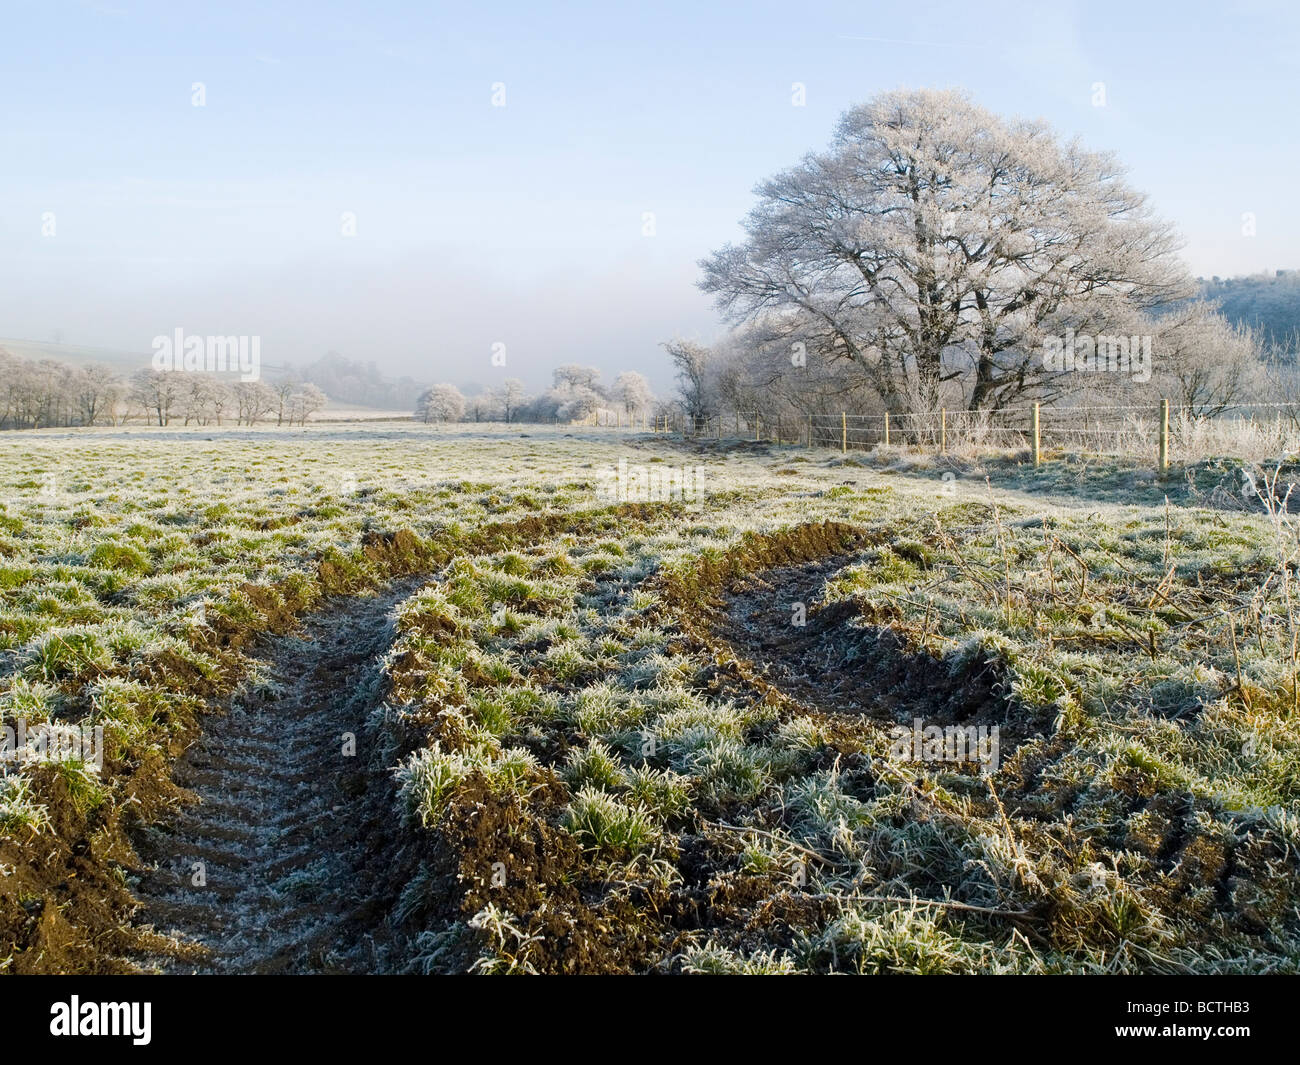 A beautiful white winter landscape, taken on a clear sunny day near Longnor in the Peak District Derbyshire England - Stock Image